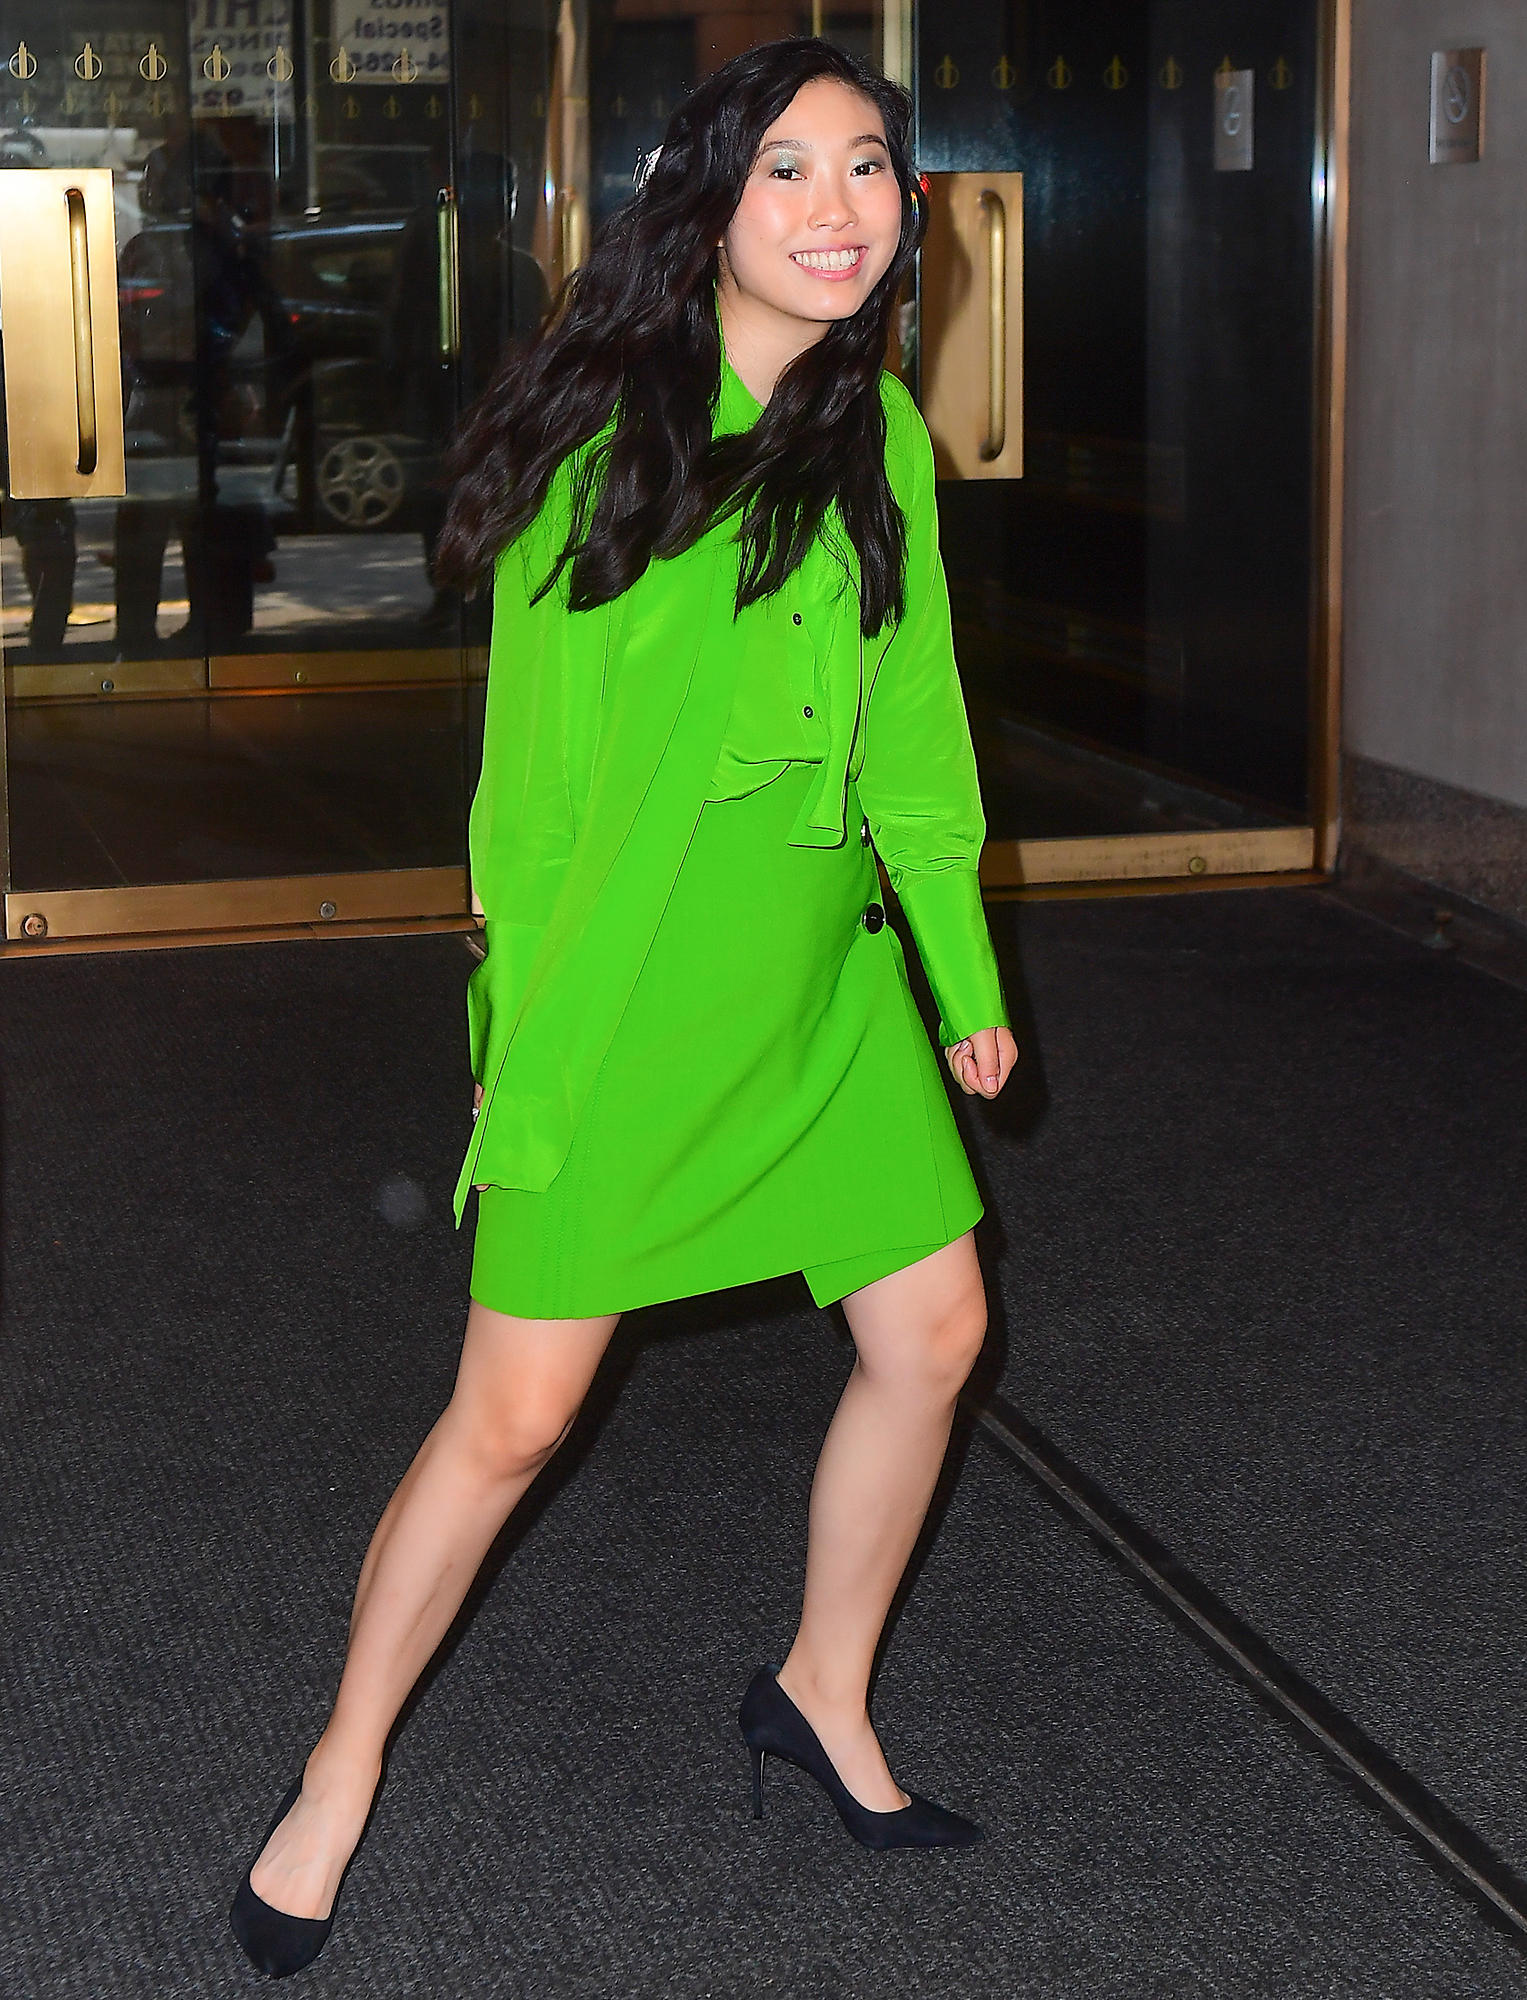 Awkwafina Wears Vibrant Green Dress As She Promotes Crazy Rich Asians In New York City